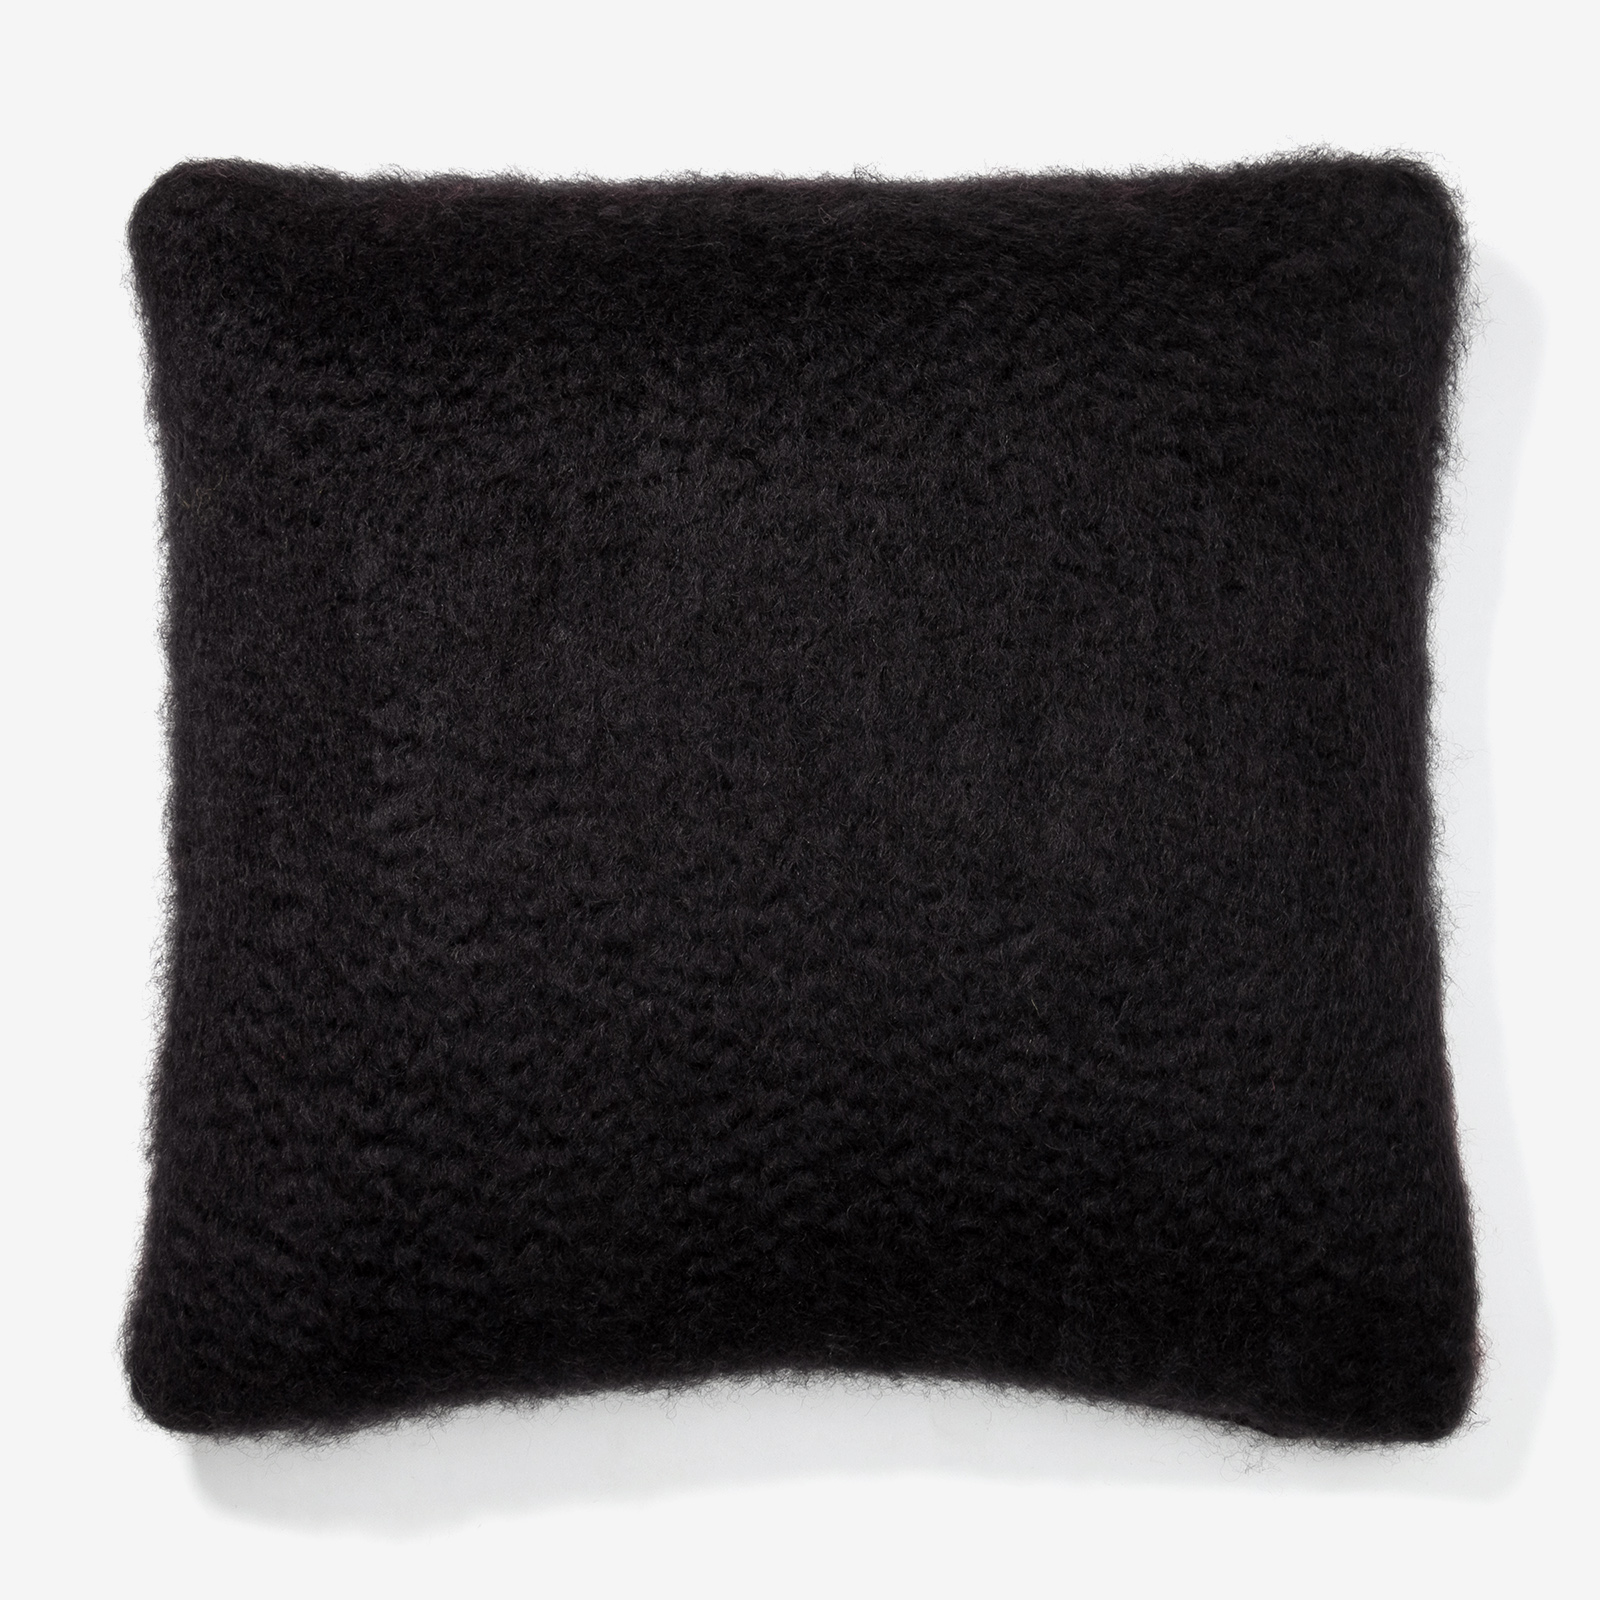 Pillow product photo